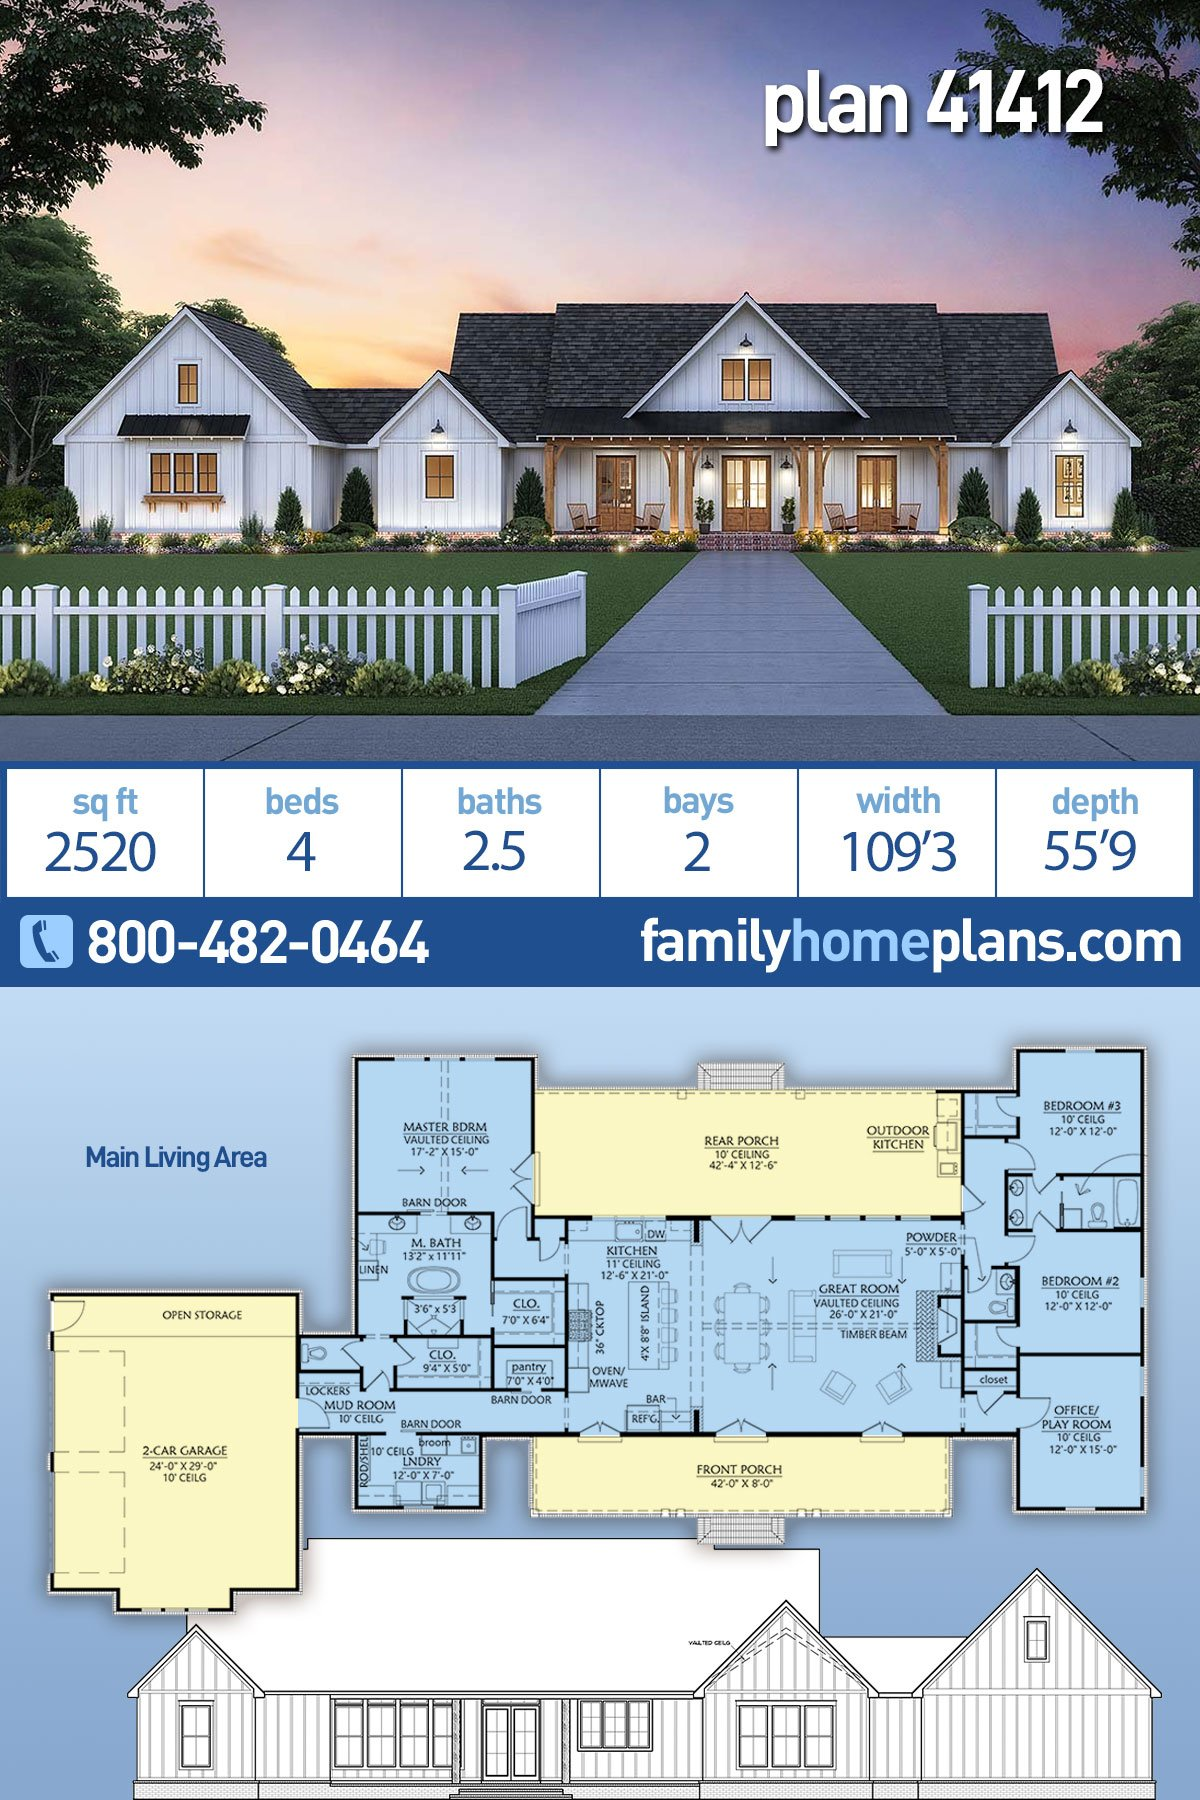 Country, Farmhouse, Traditional House Plan 41412 with 4 Beds, 3 Baths, 2 Car Garage